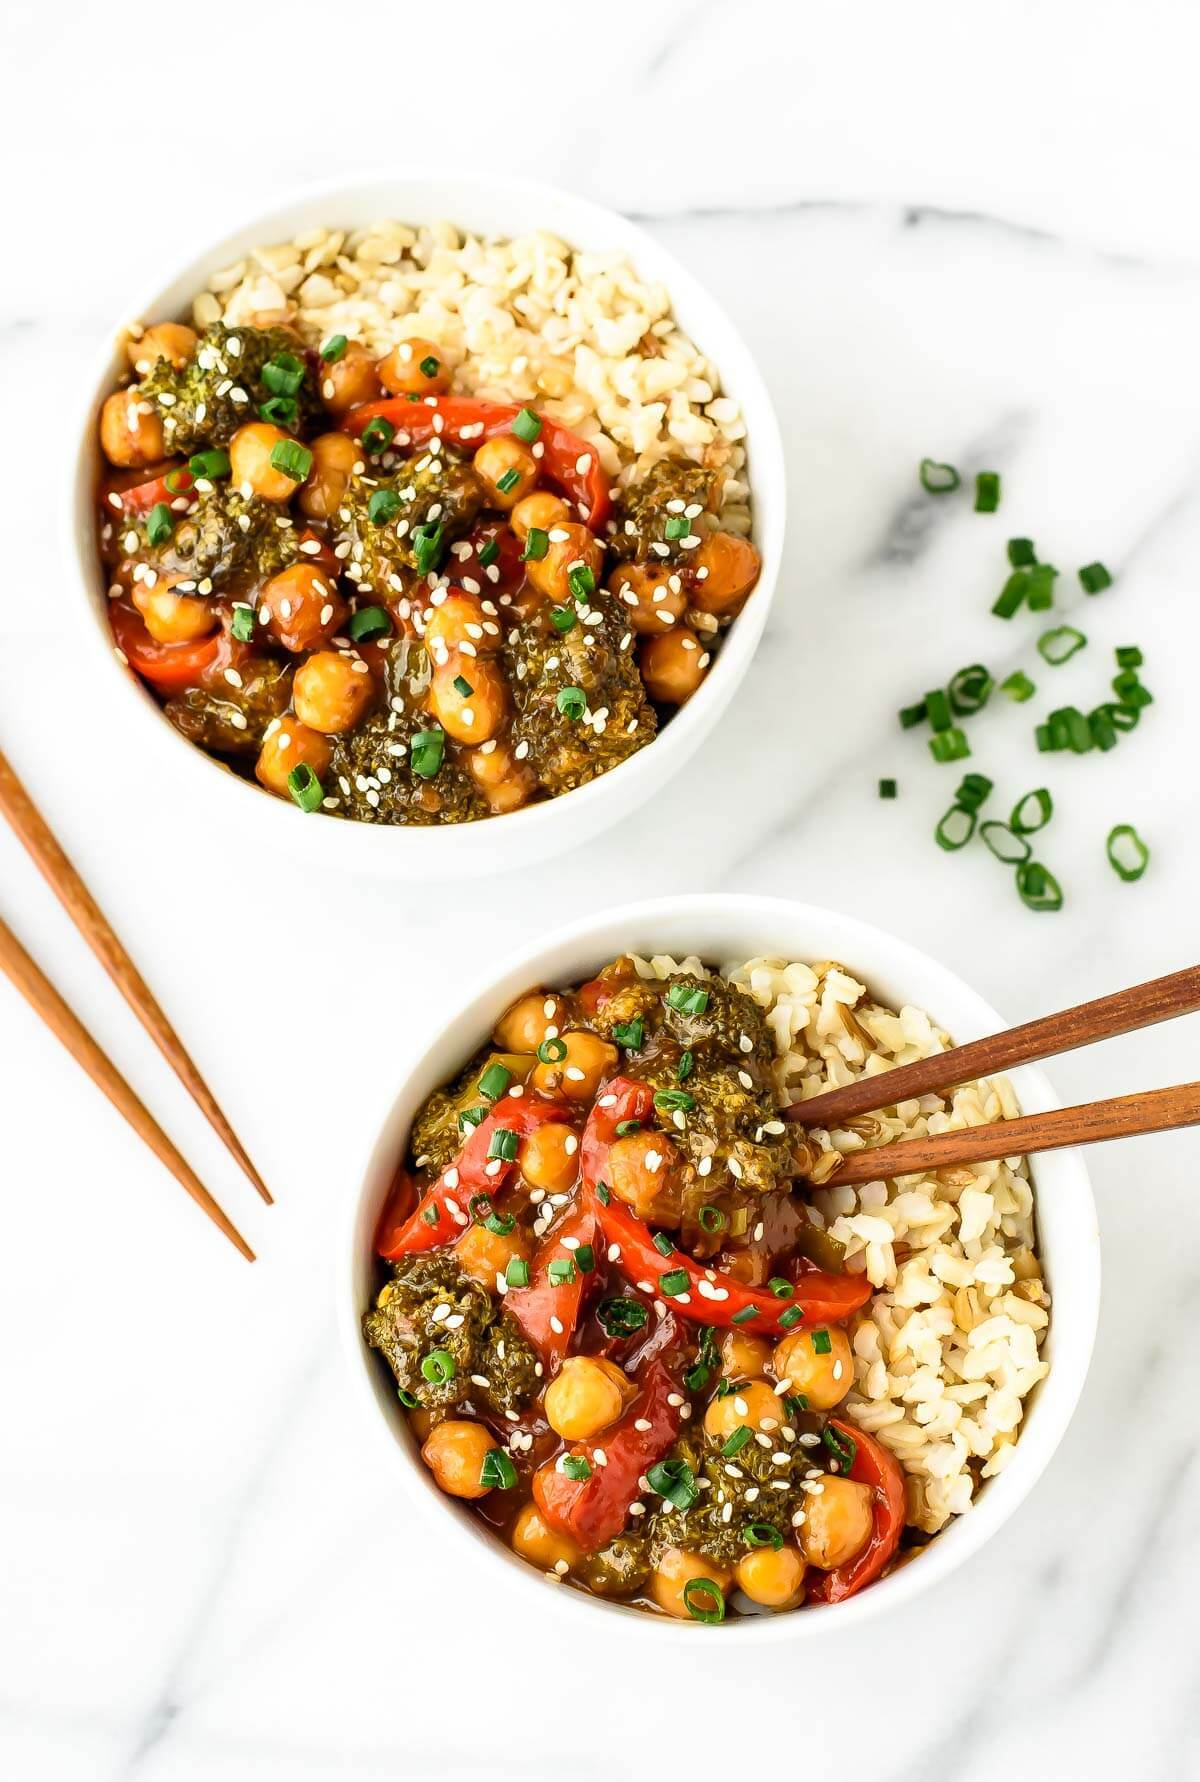 General Tso's chickpeas - a healthy vegetarian twist on the classic Chinese dish. WAY better than takeout!